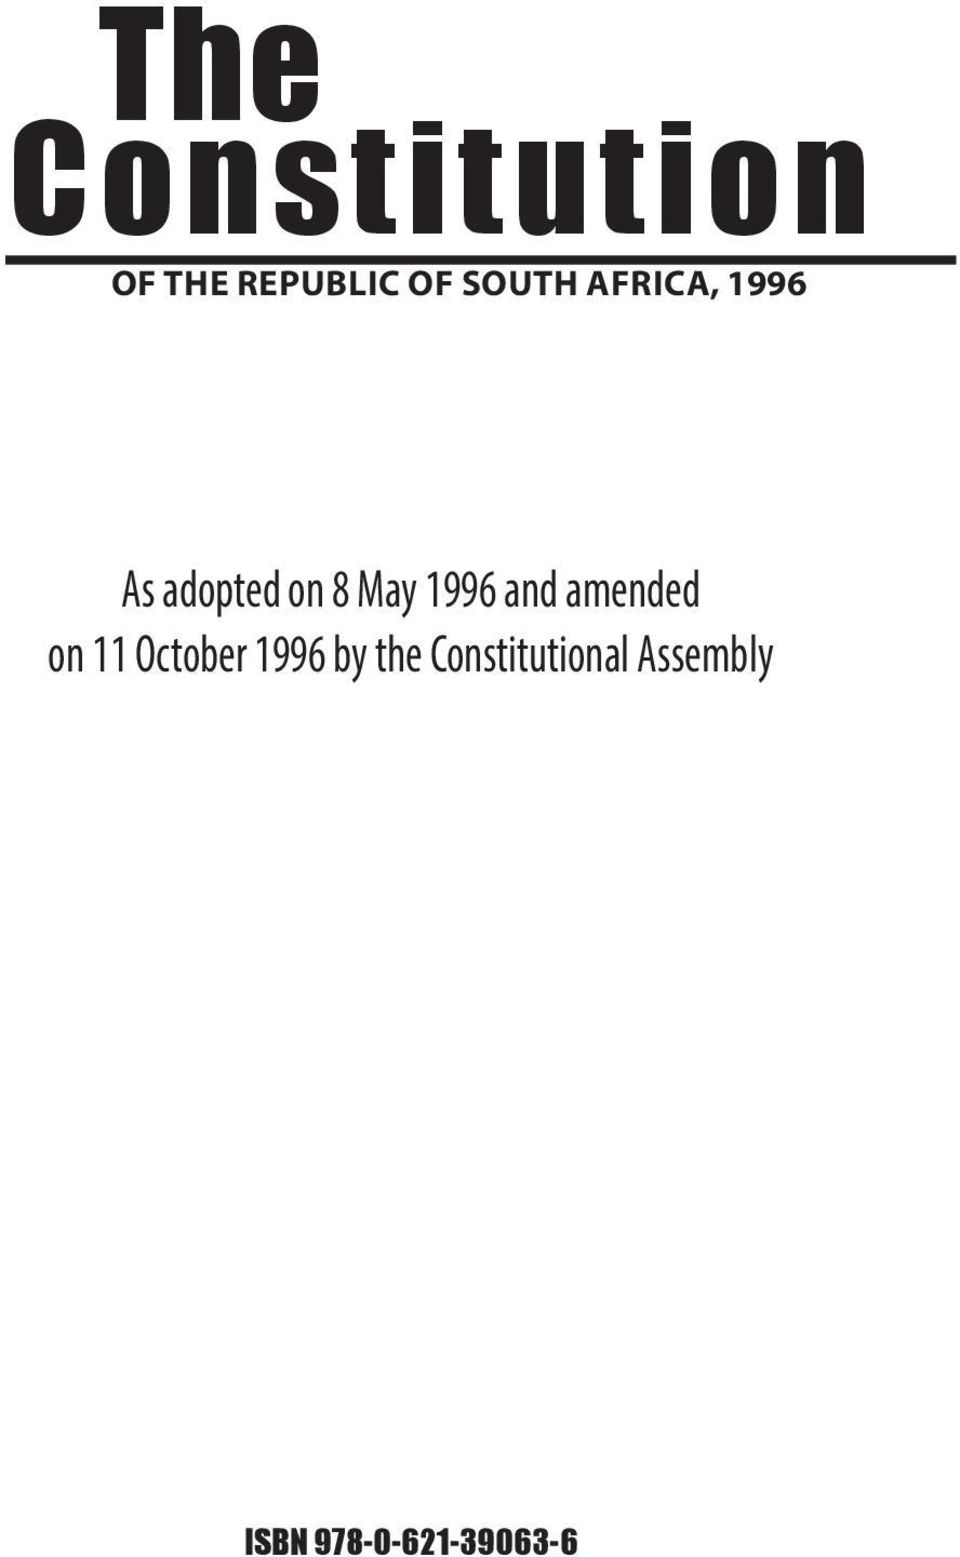 1996 and amended on 11 October 1996 by